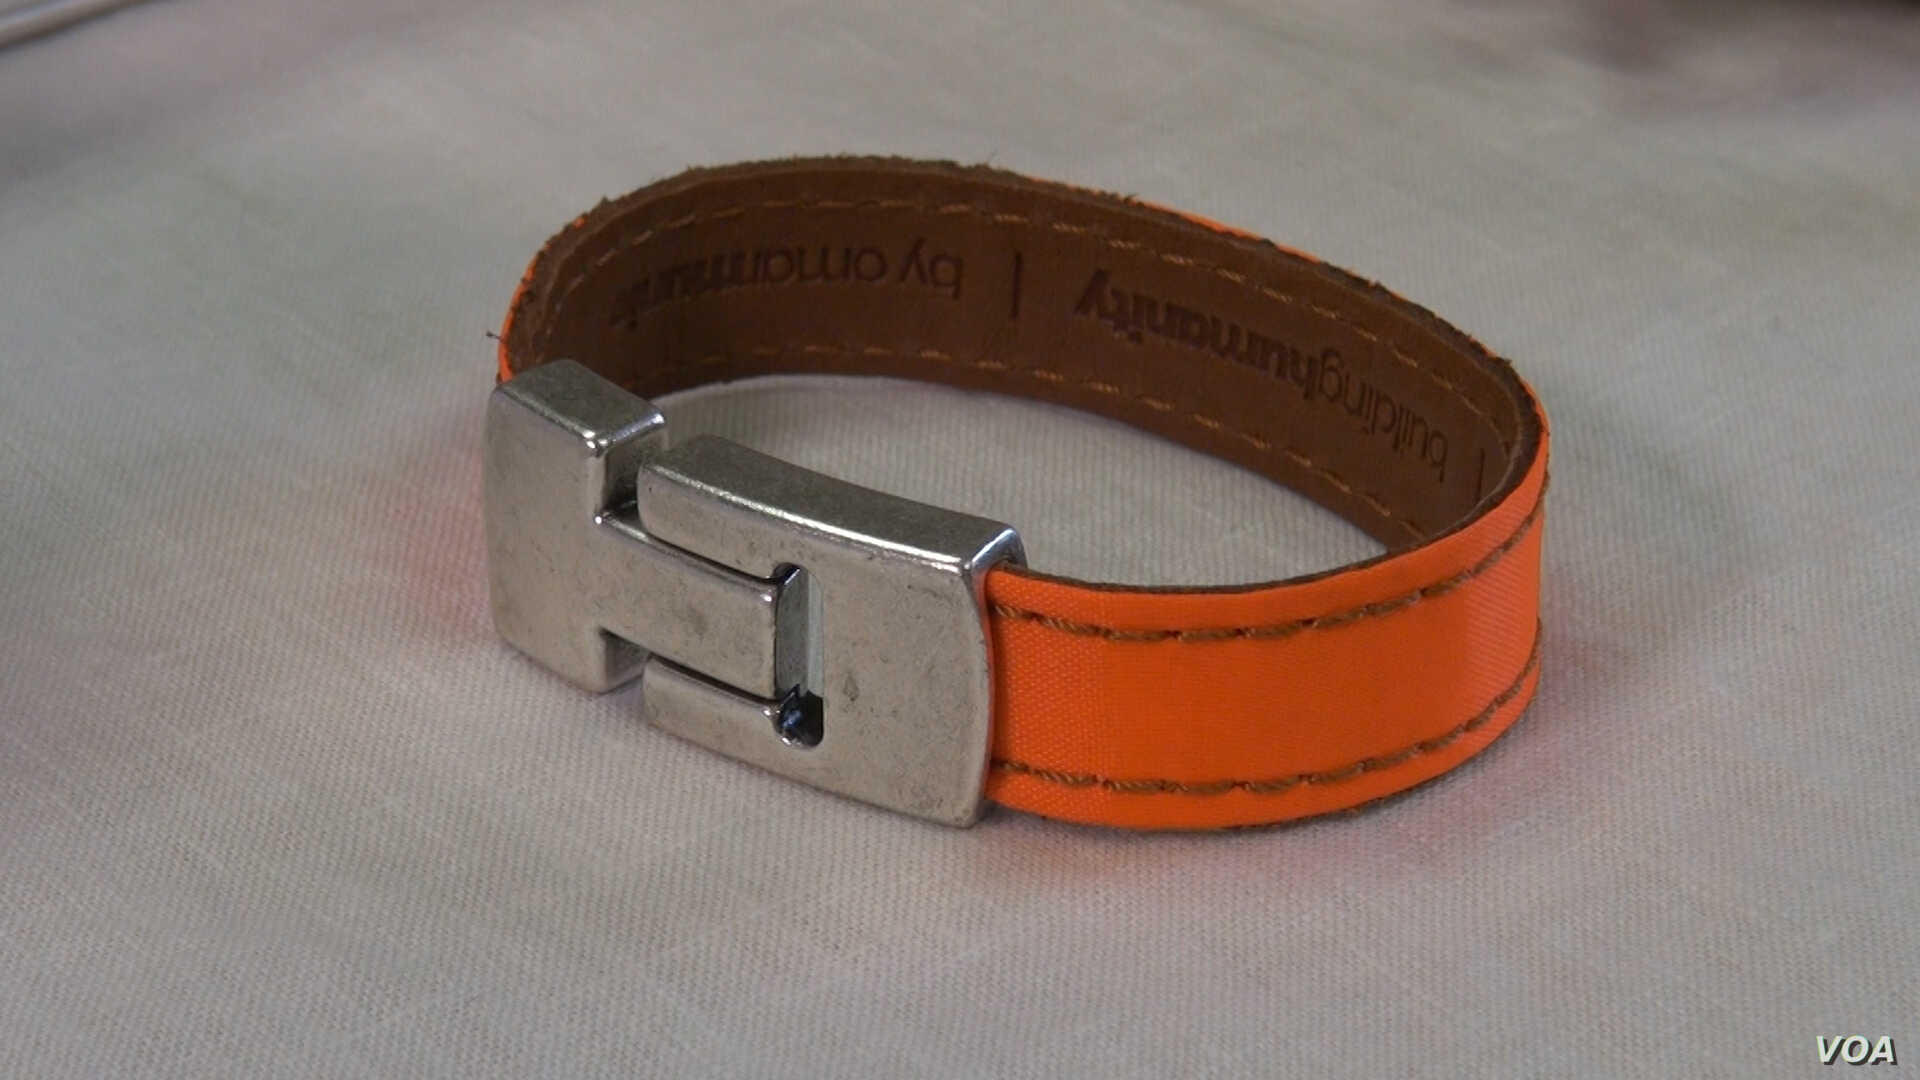 This bracelet is made from recycled life jackets. Half the proceeds go to organizations that help refugees.